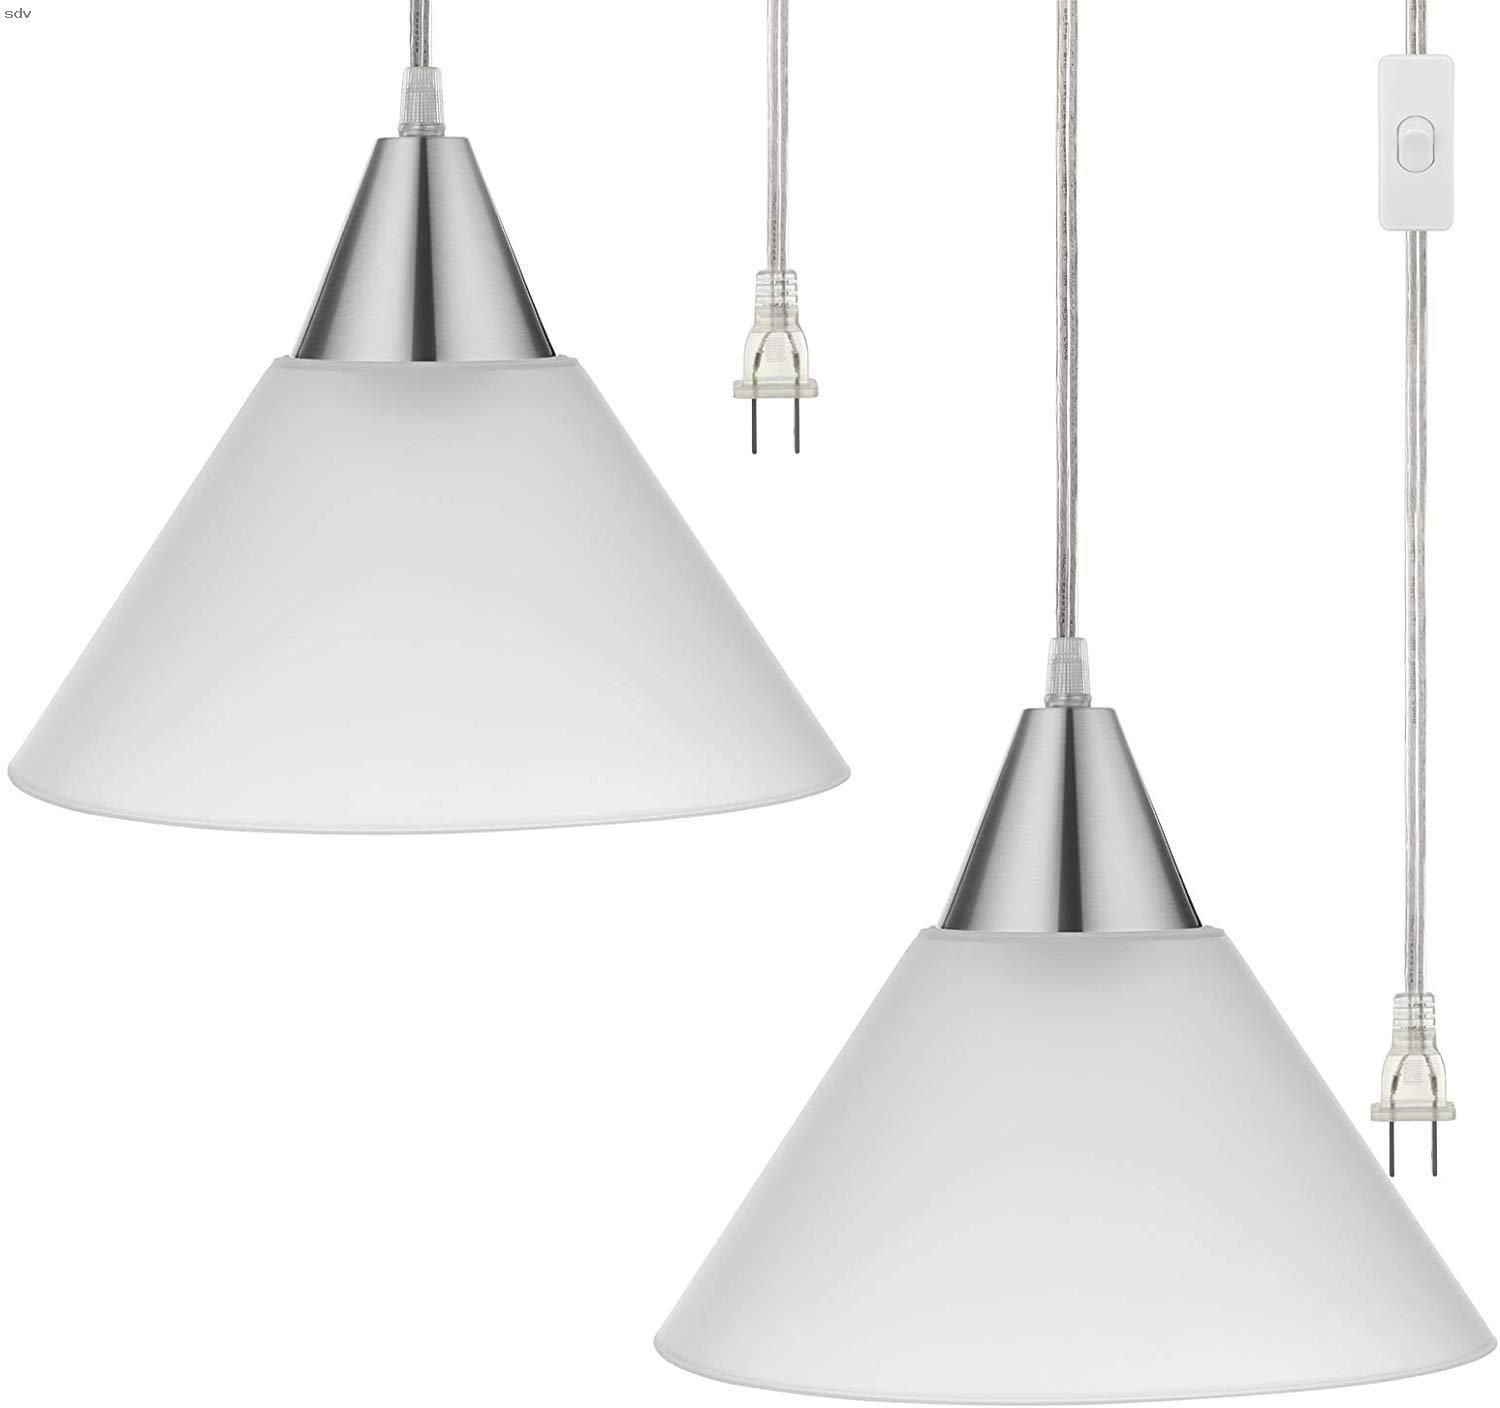 Dewenwils Plug In Indoor Pendant Hanging Light Interior Ceiling Light For Living Room Bedroom Dining Hall Frosted Plastic White Shade 15ft Clear Cord On Of Di 2020 #plug #in #lights #for #living #room